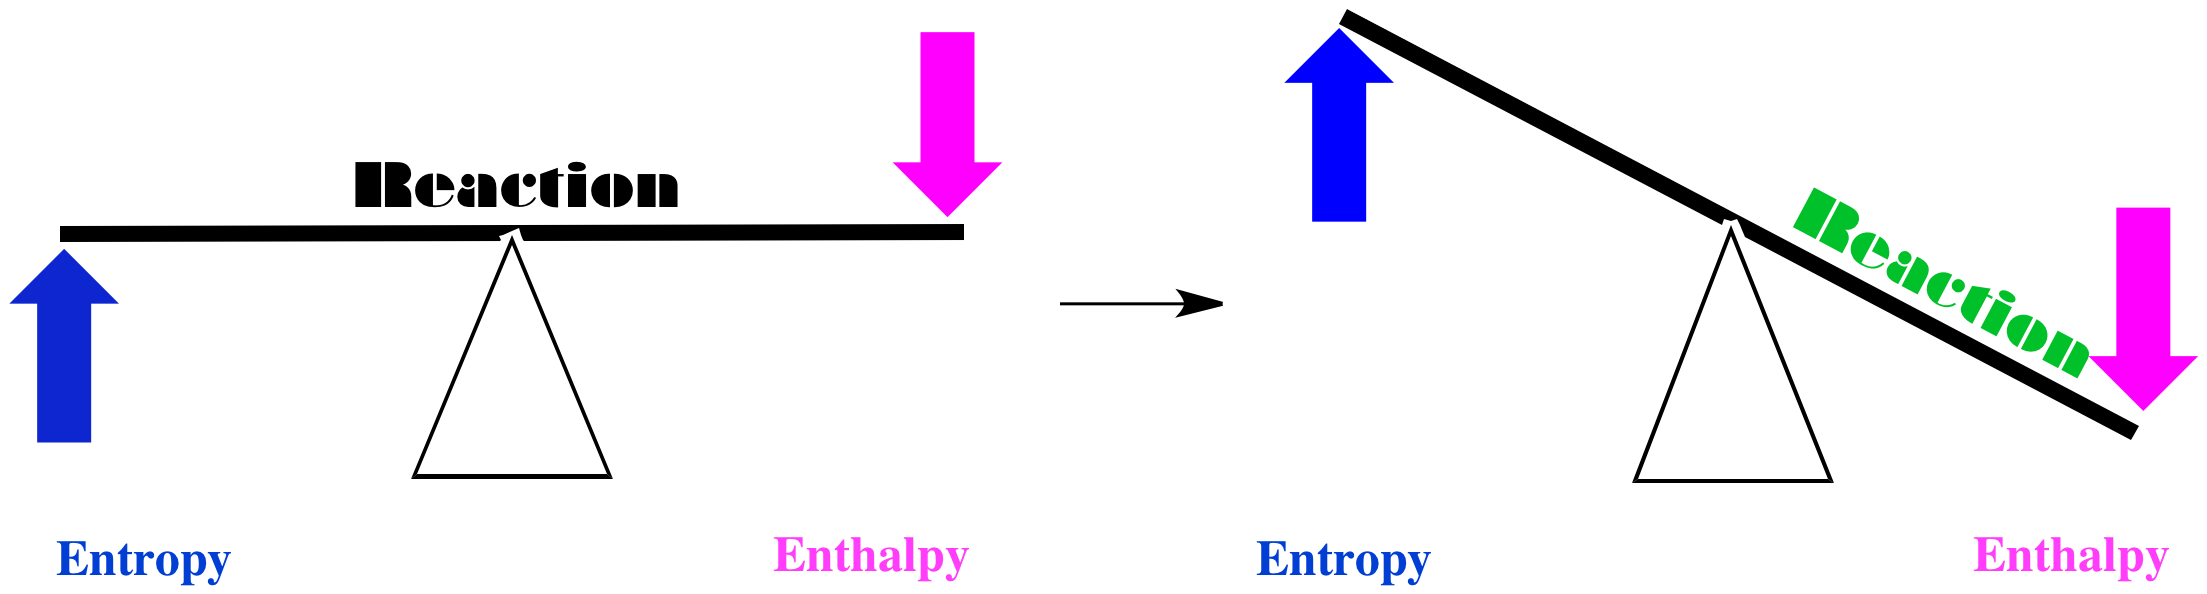 Effect of change in enthalpy and entropy during a reaction.